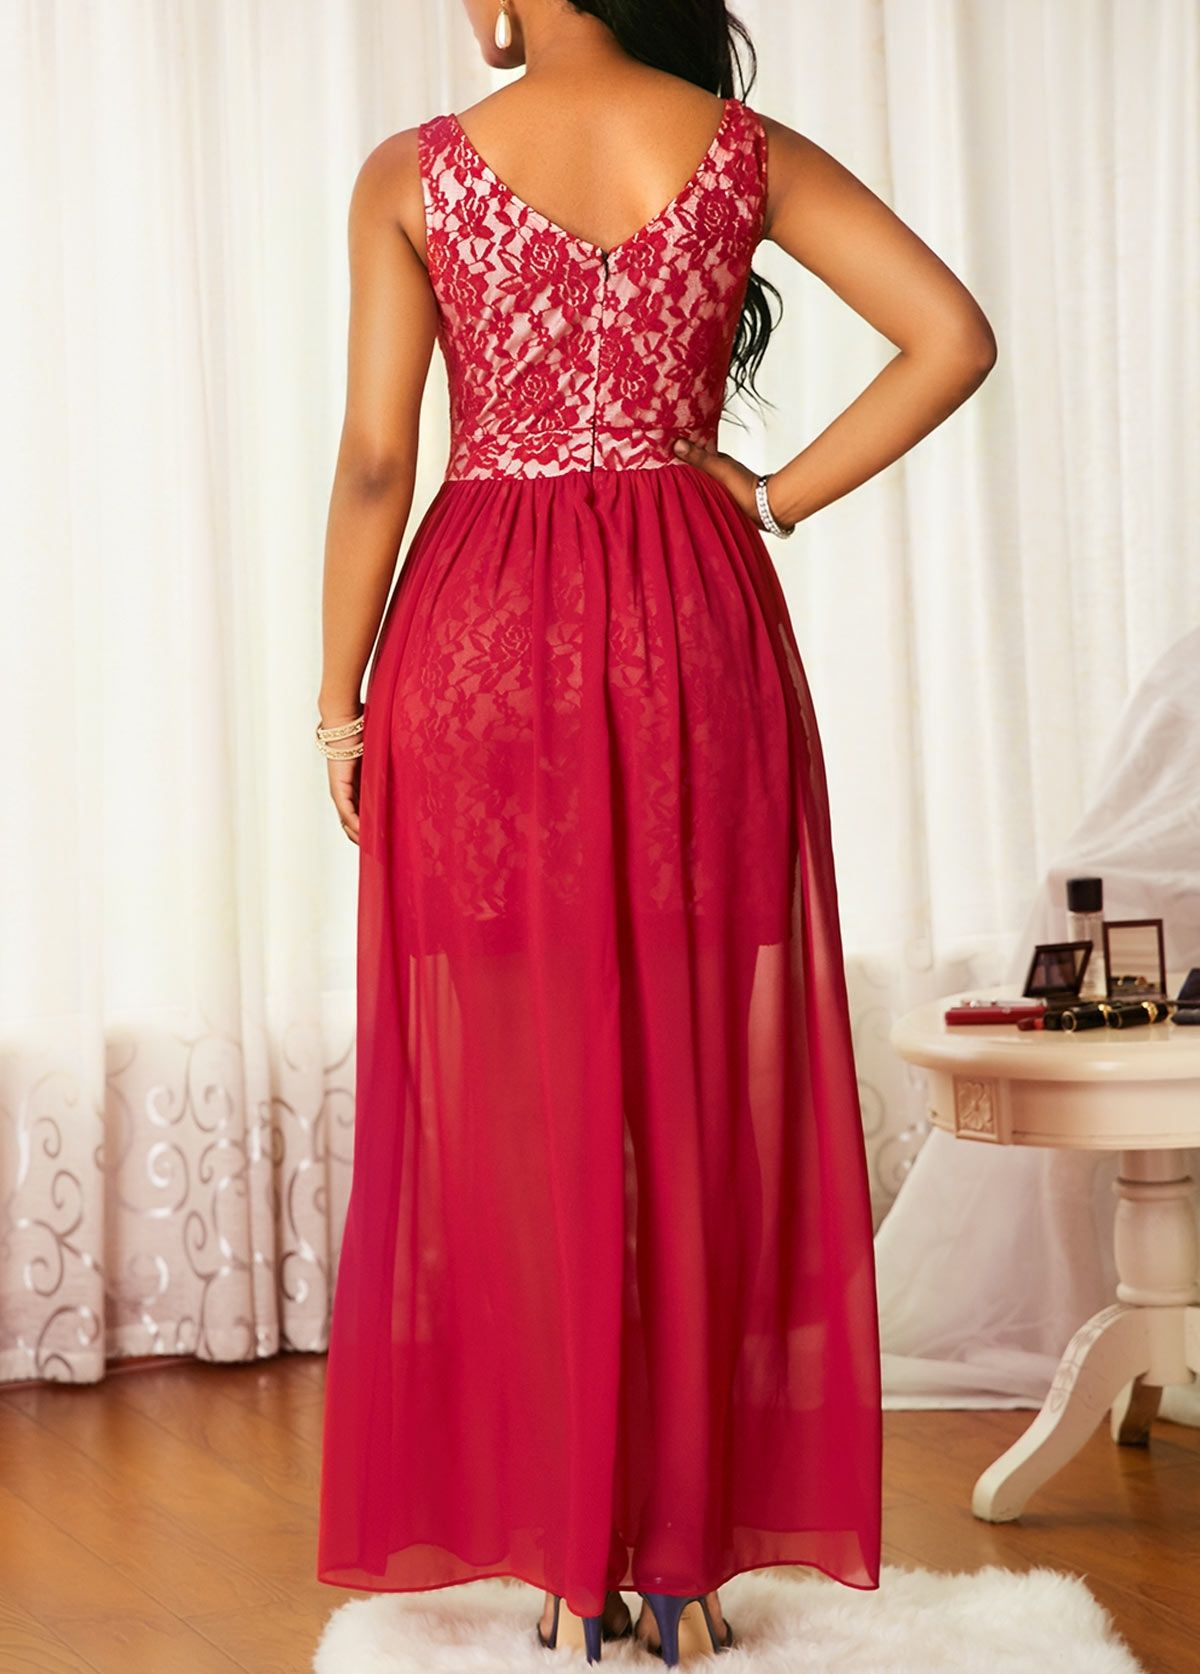 bac3b9780f0 Beautiful Dresses  dress  dresses  rosewe